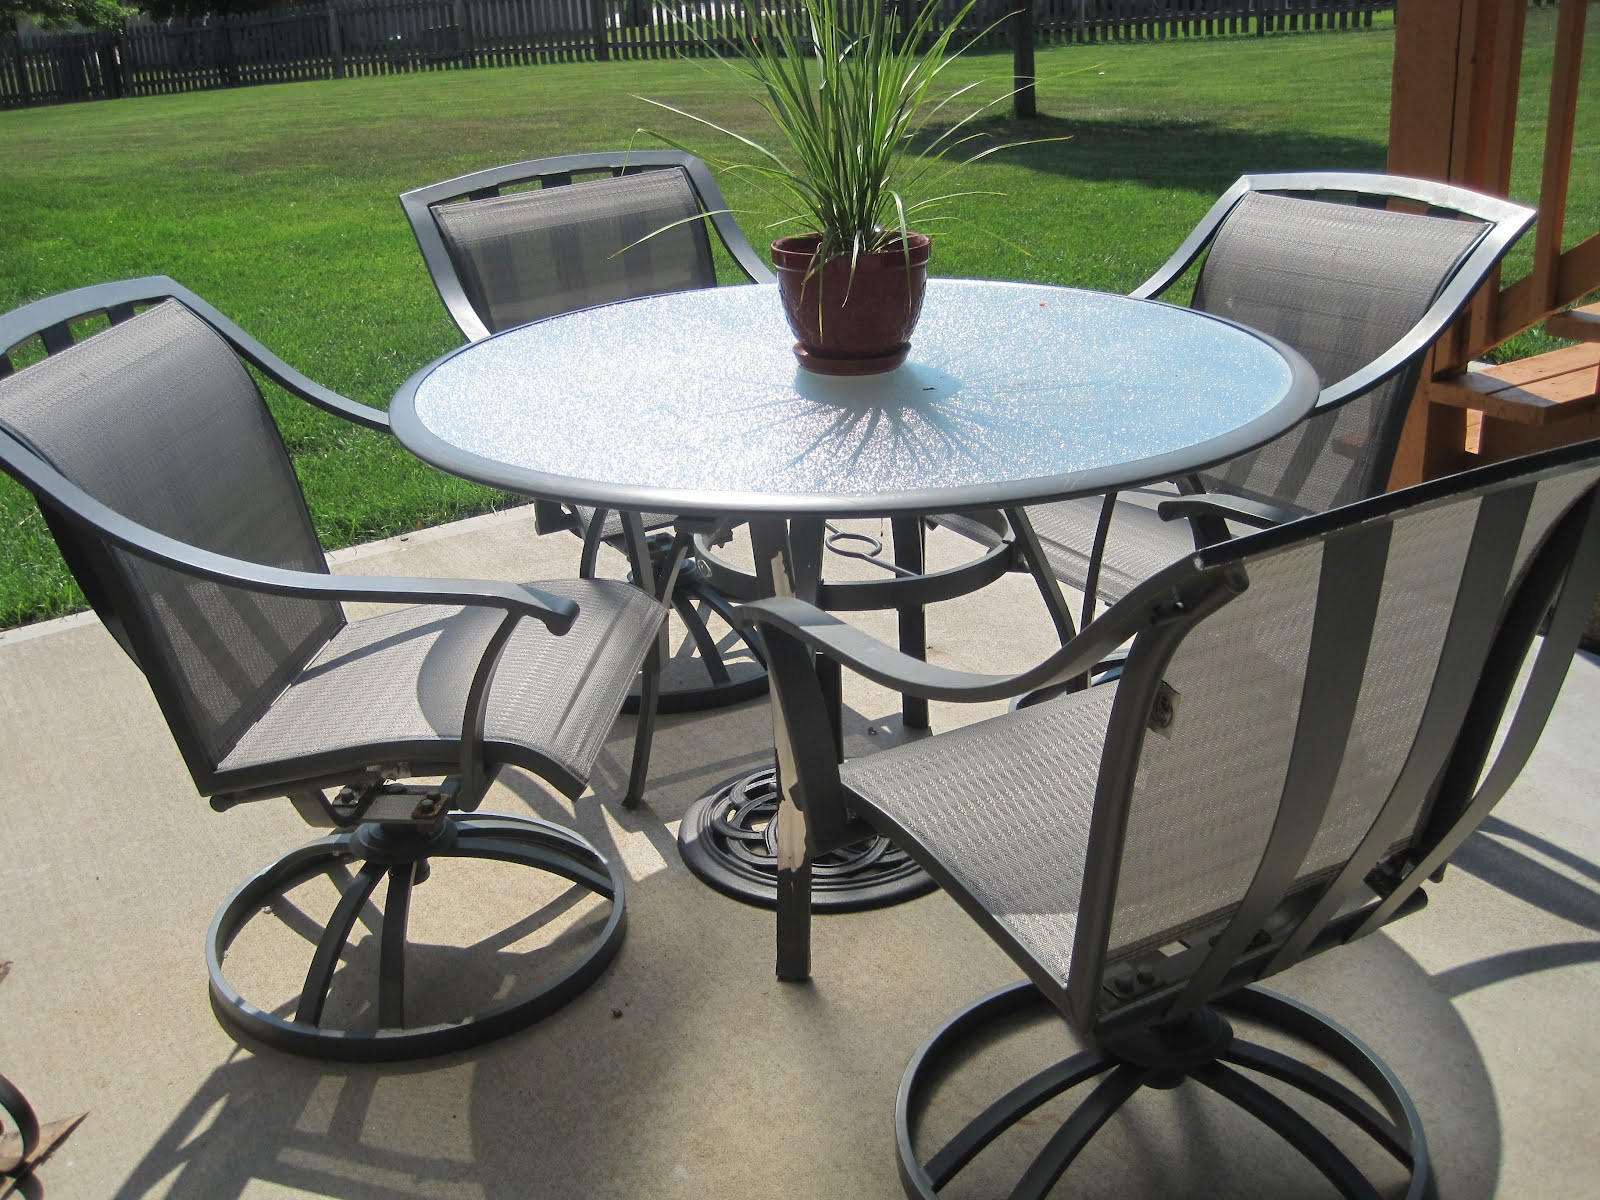 Best ideas about Hampton Bay Patio Cushions . Save or Pin Guide purpose is to Hampton bay patio furniture Patio Now.